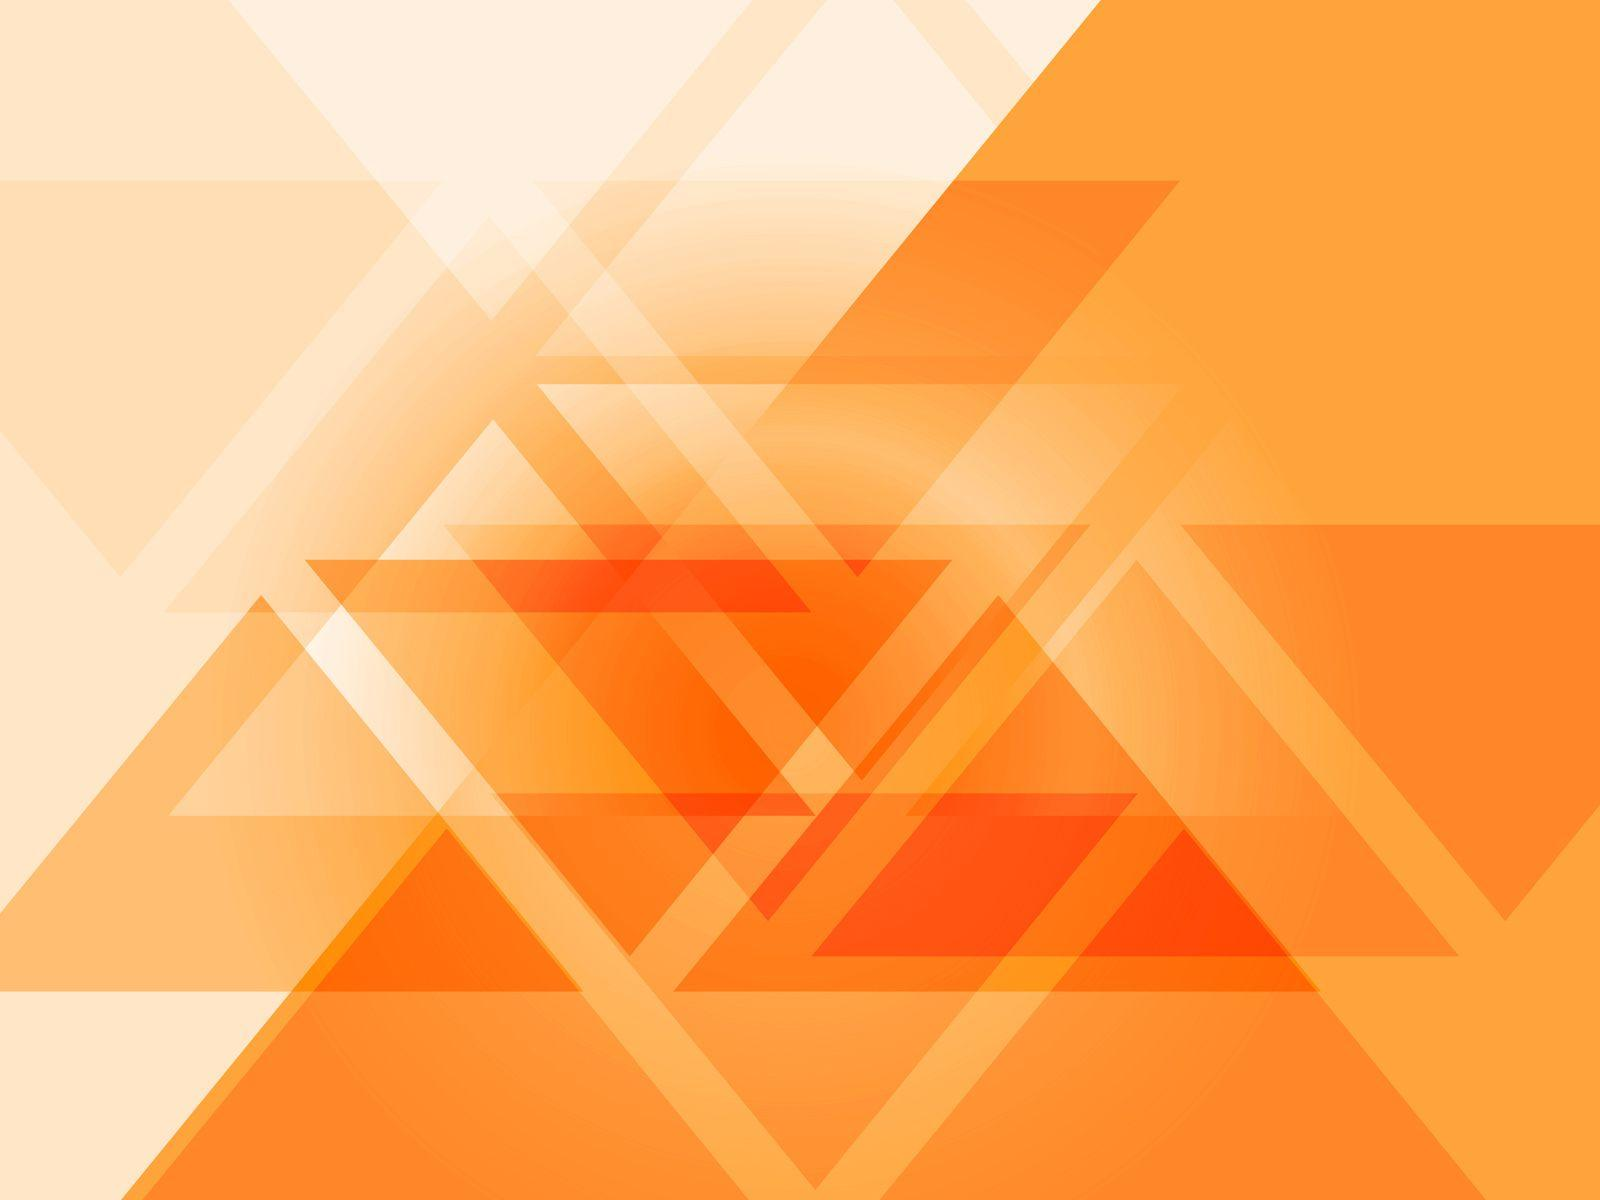 Wallpaper Orange Design : Orange backgrounds image wallpaper cave